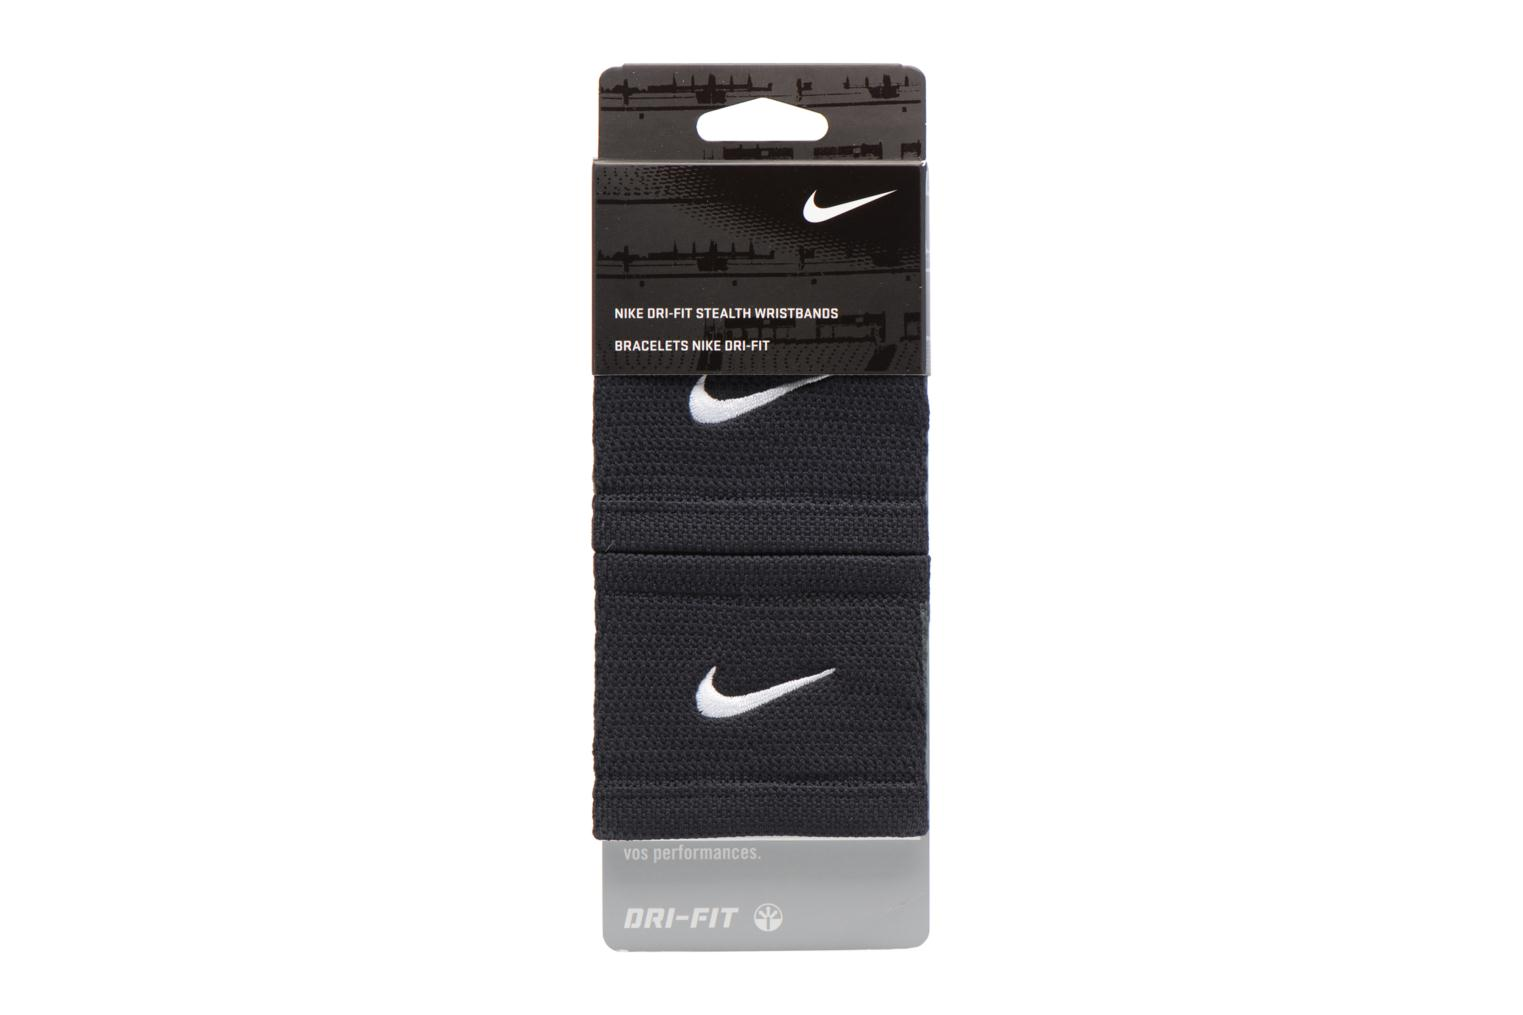 Divers Nike DRI-FIT STEALTH WRISTBANDS Zwart model